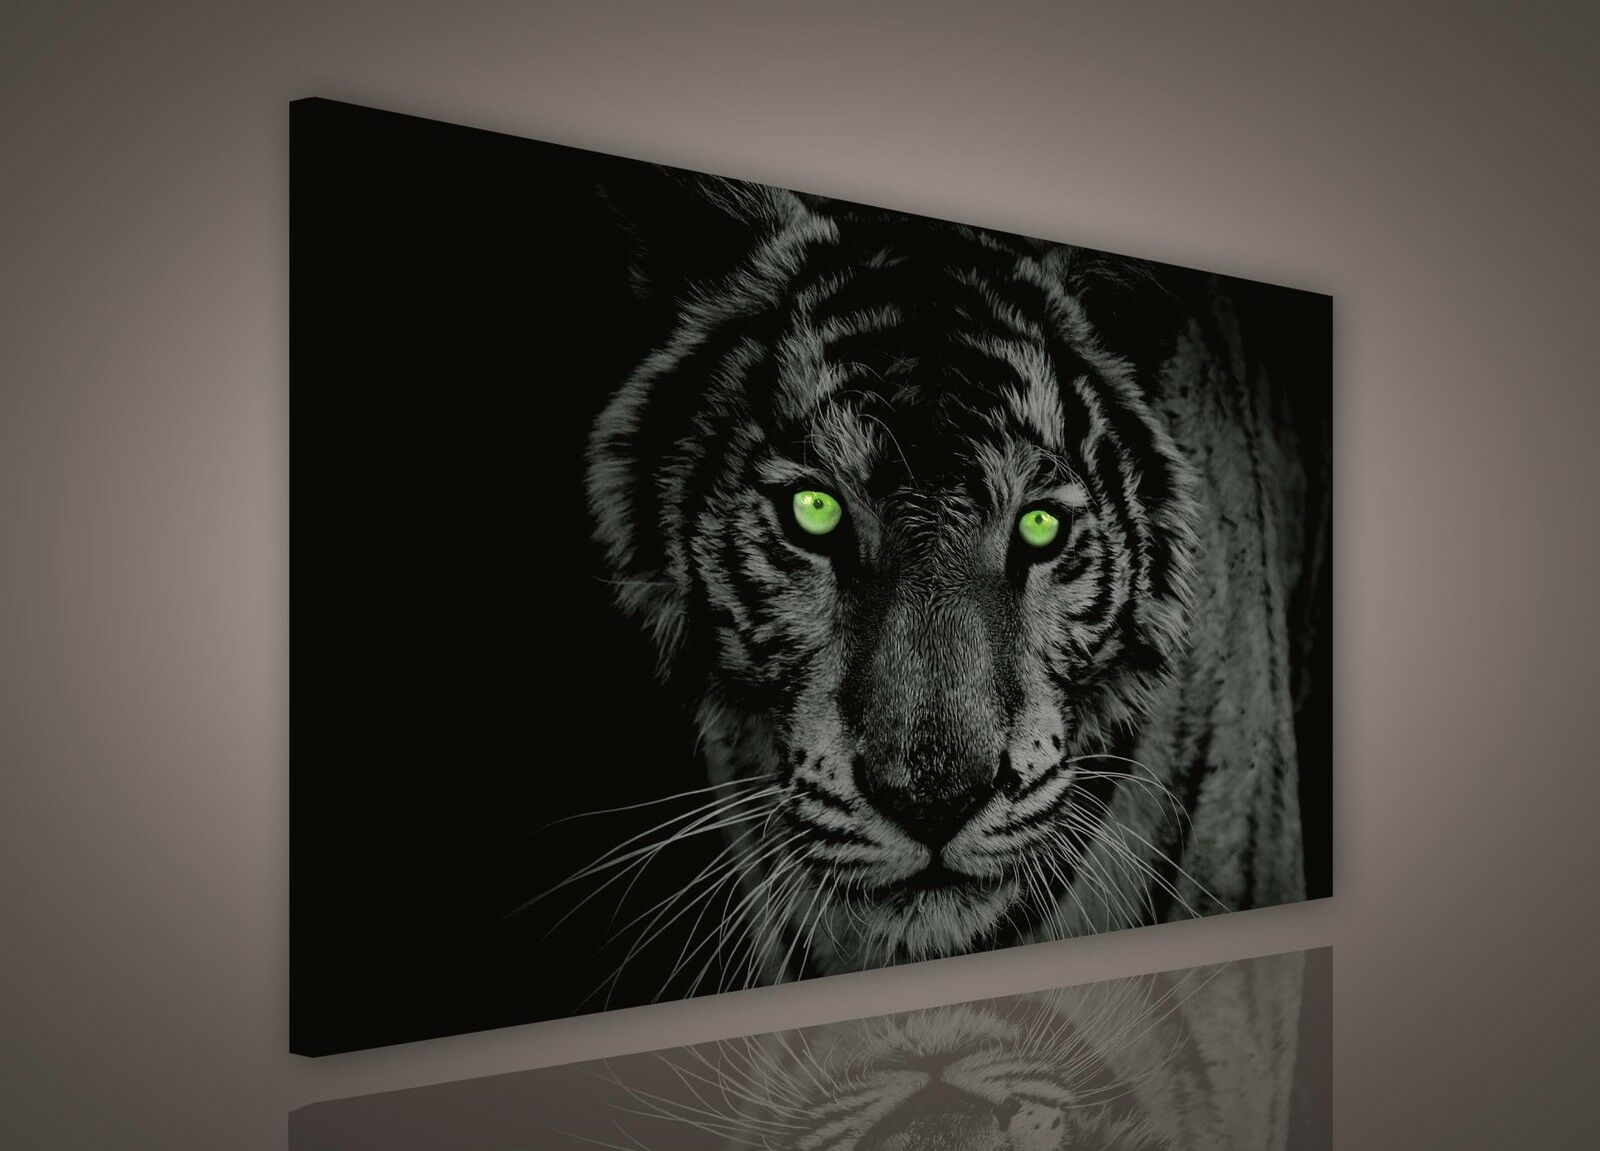 leinwand bild wandbild bilder pp130bo1 tiger schwarz wei tiere 100x75cm eur 24 00 picclick de. Black Bedroom Furniture Sets. Home Design Ideas